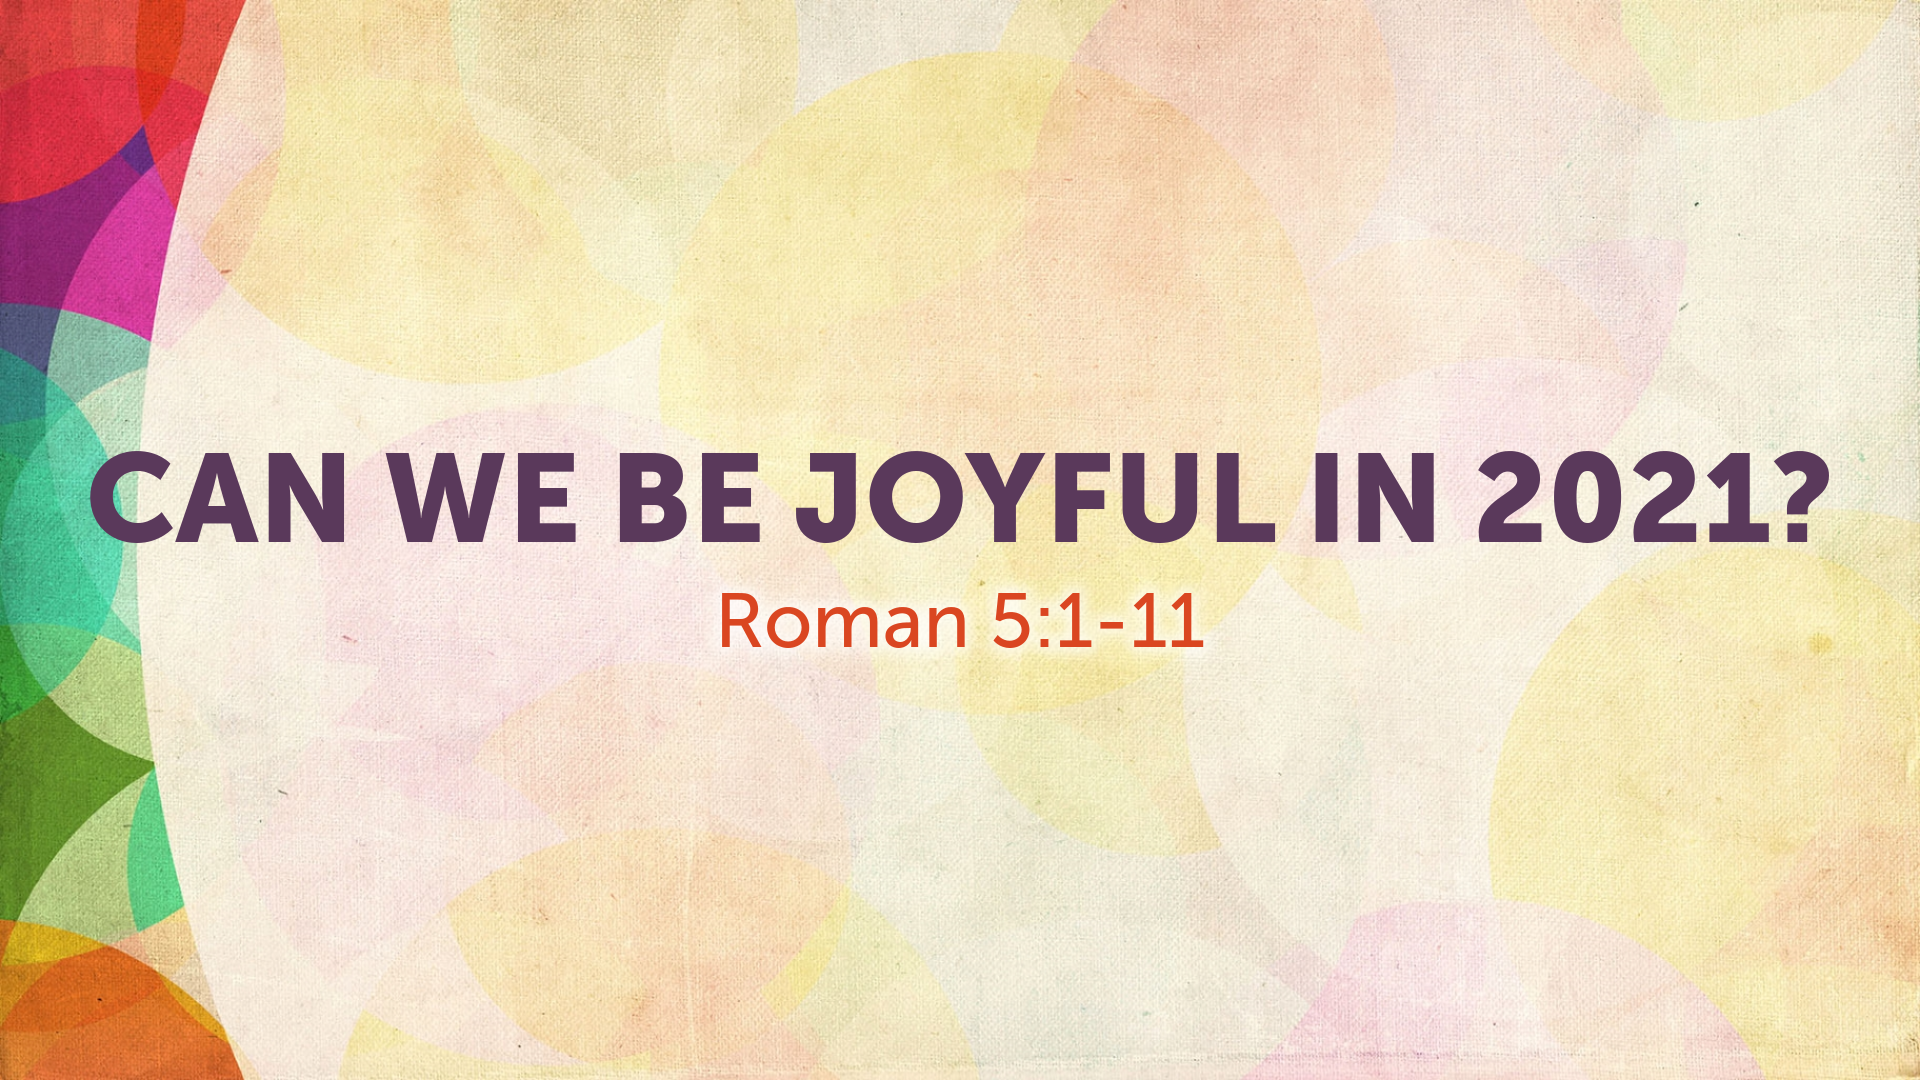 Image for the sermon Can We Be Joyful in 2021?